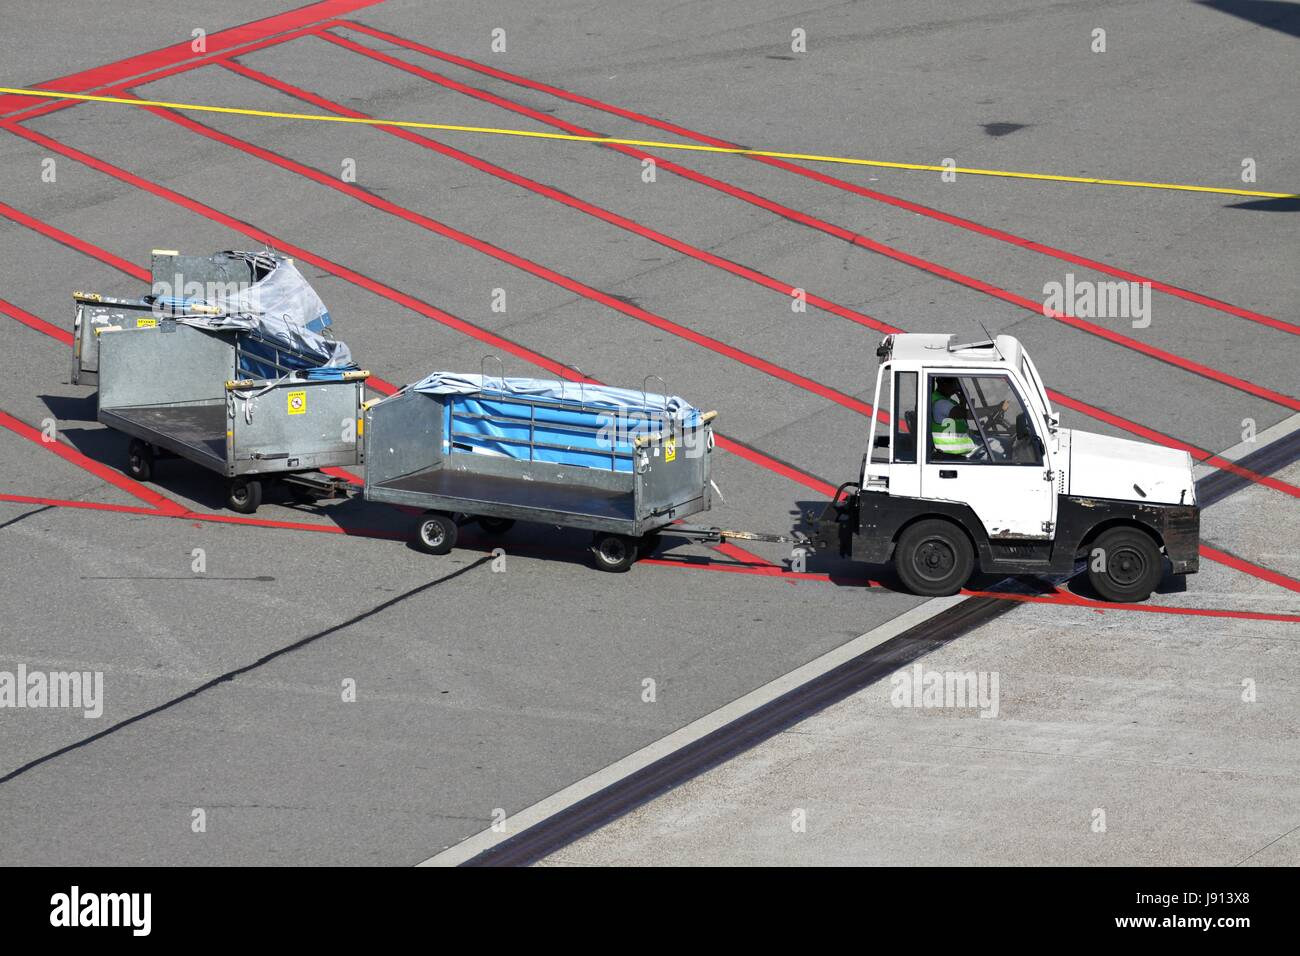 airport apron with baggage carts - Stock Image